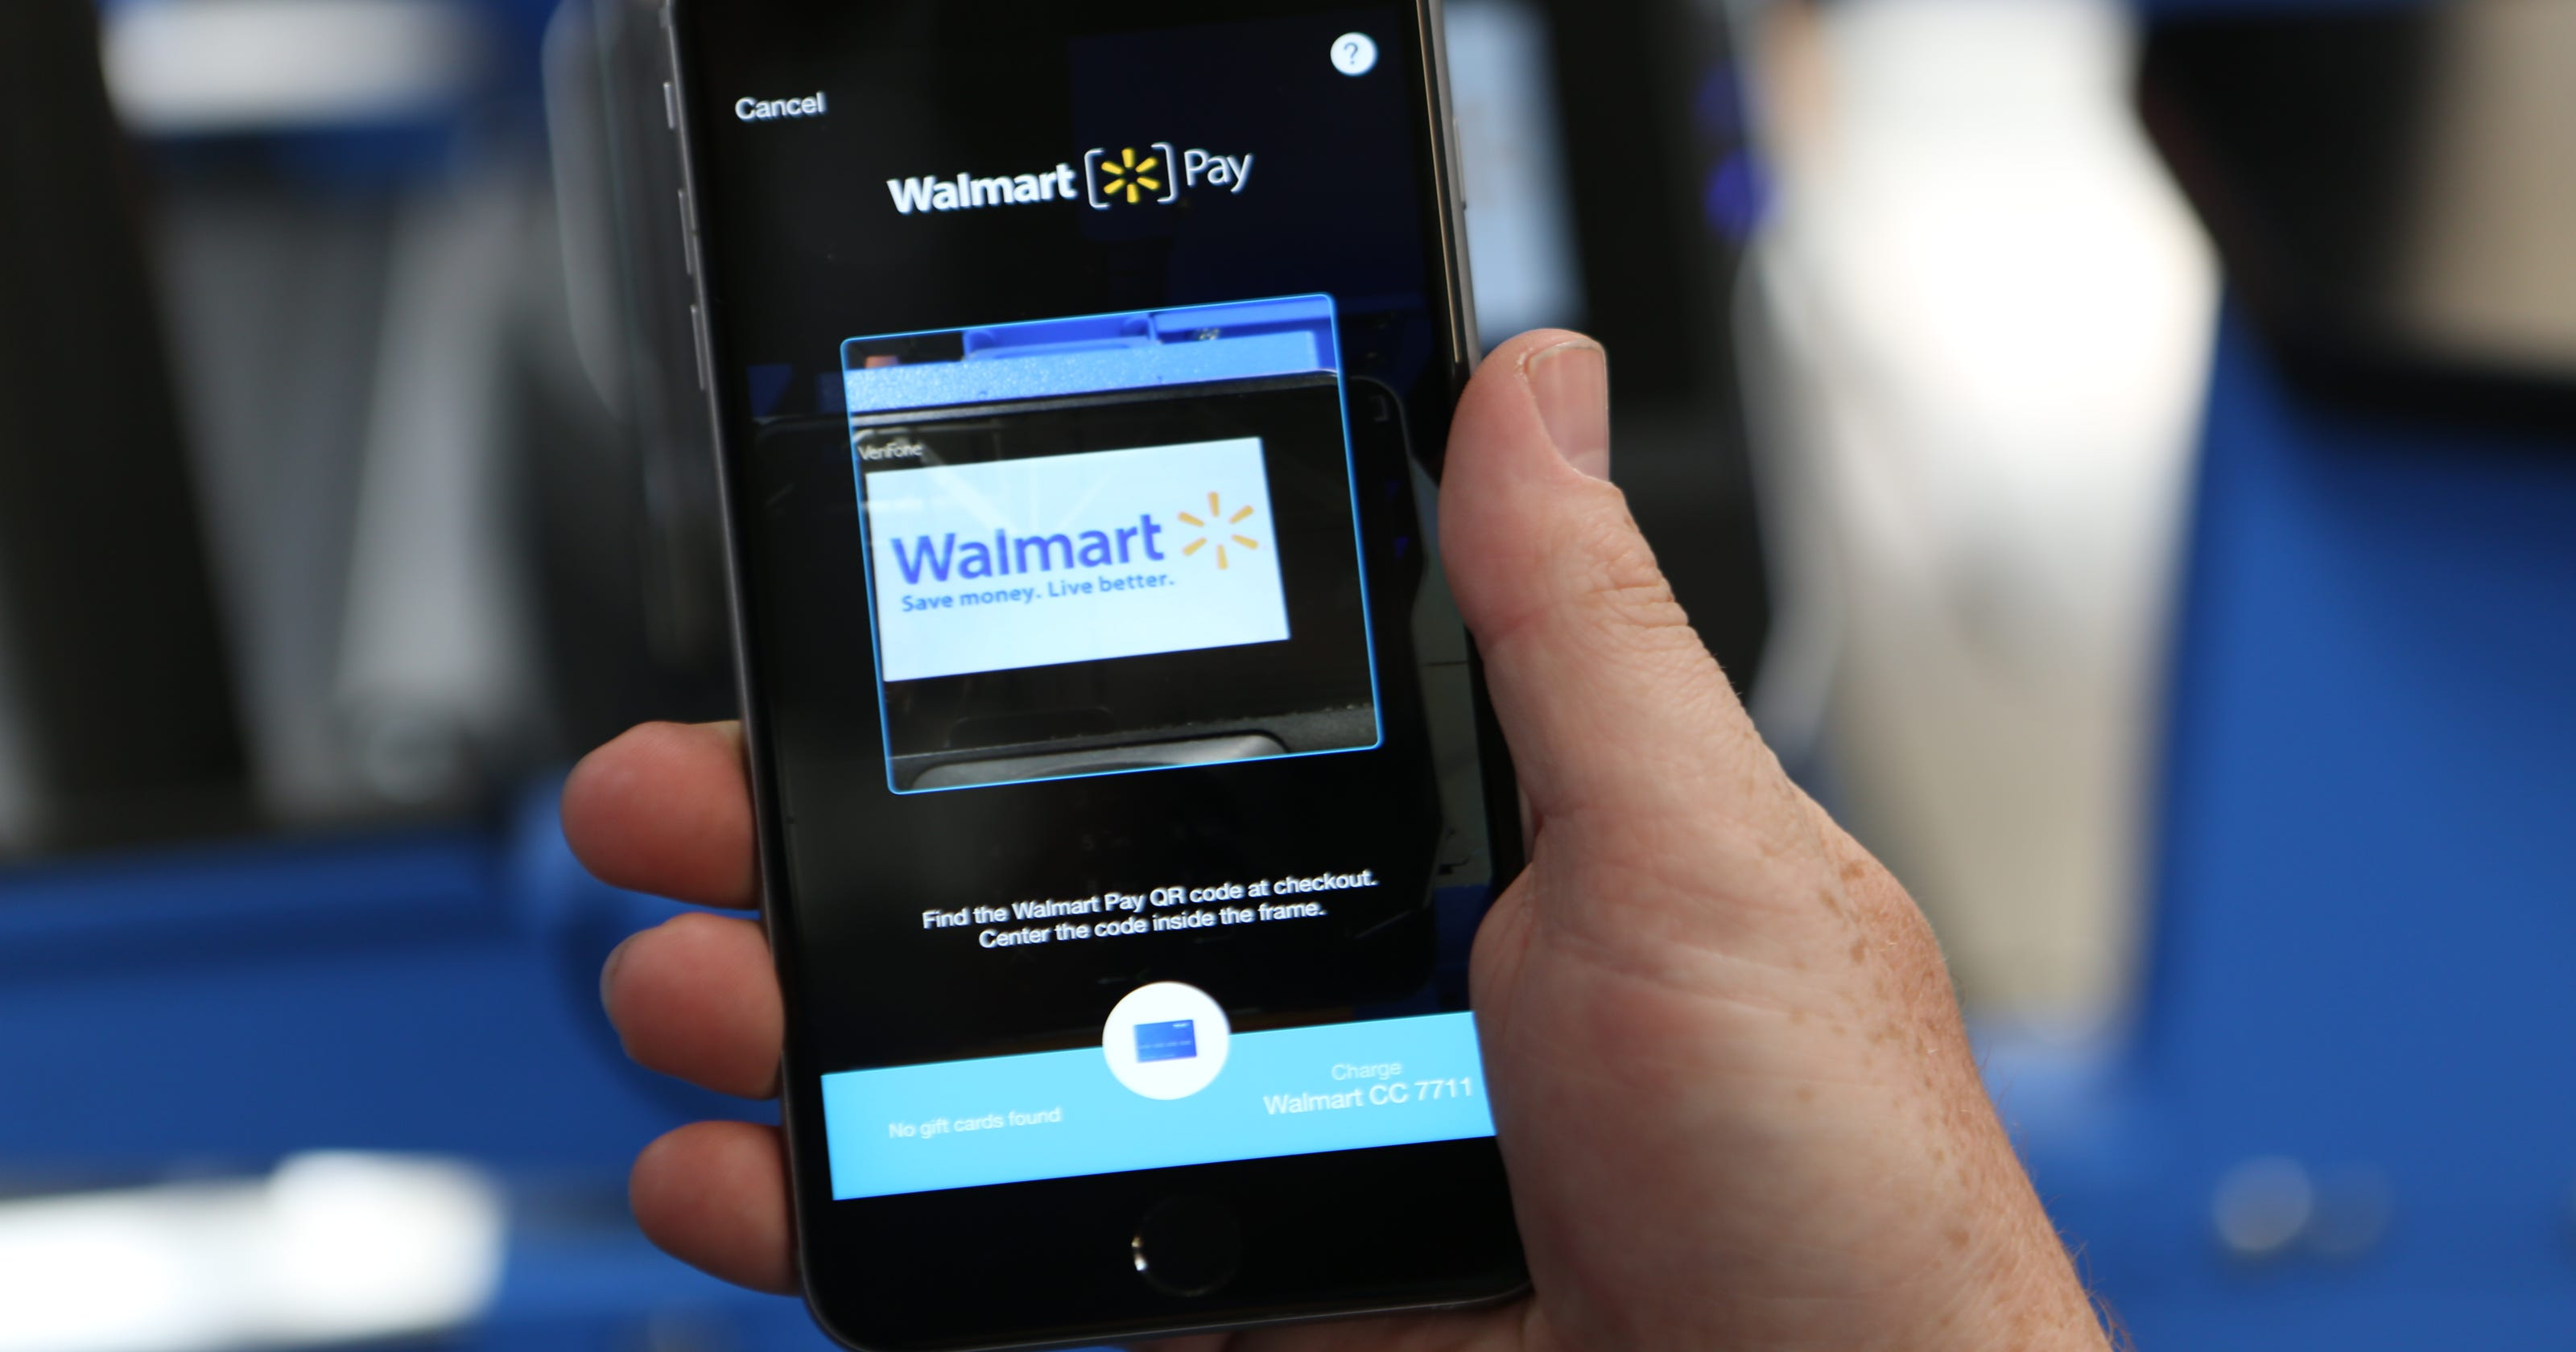 Costco adds Apple Pay, while Walmart sticks with its own mobile option